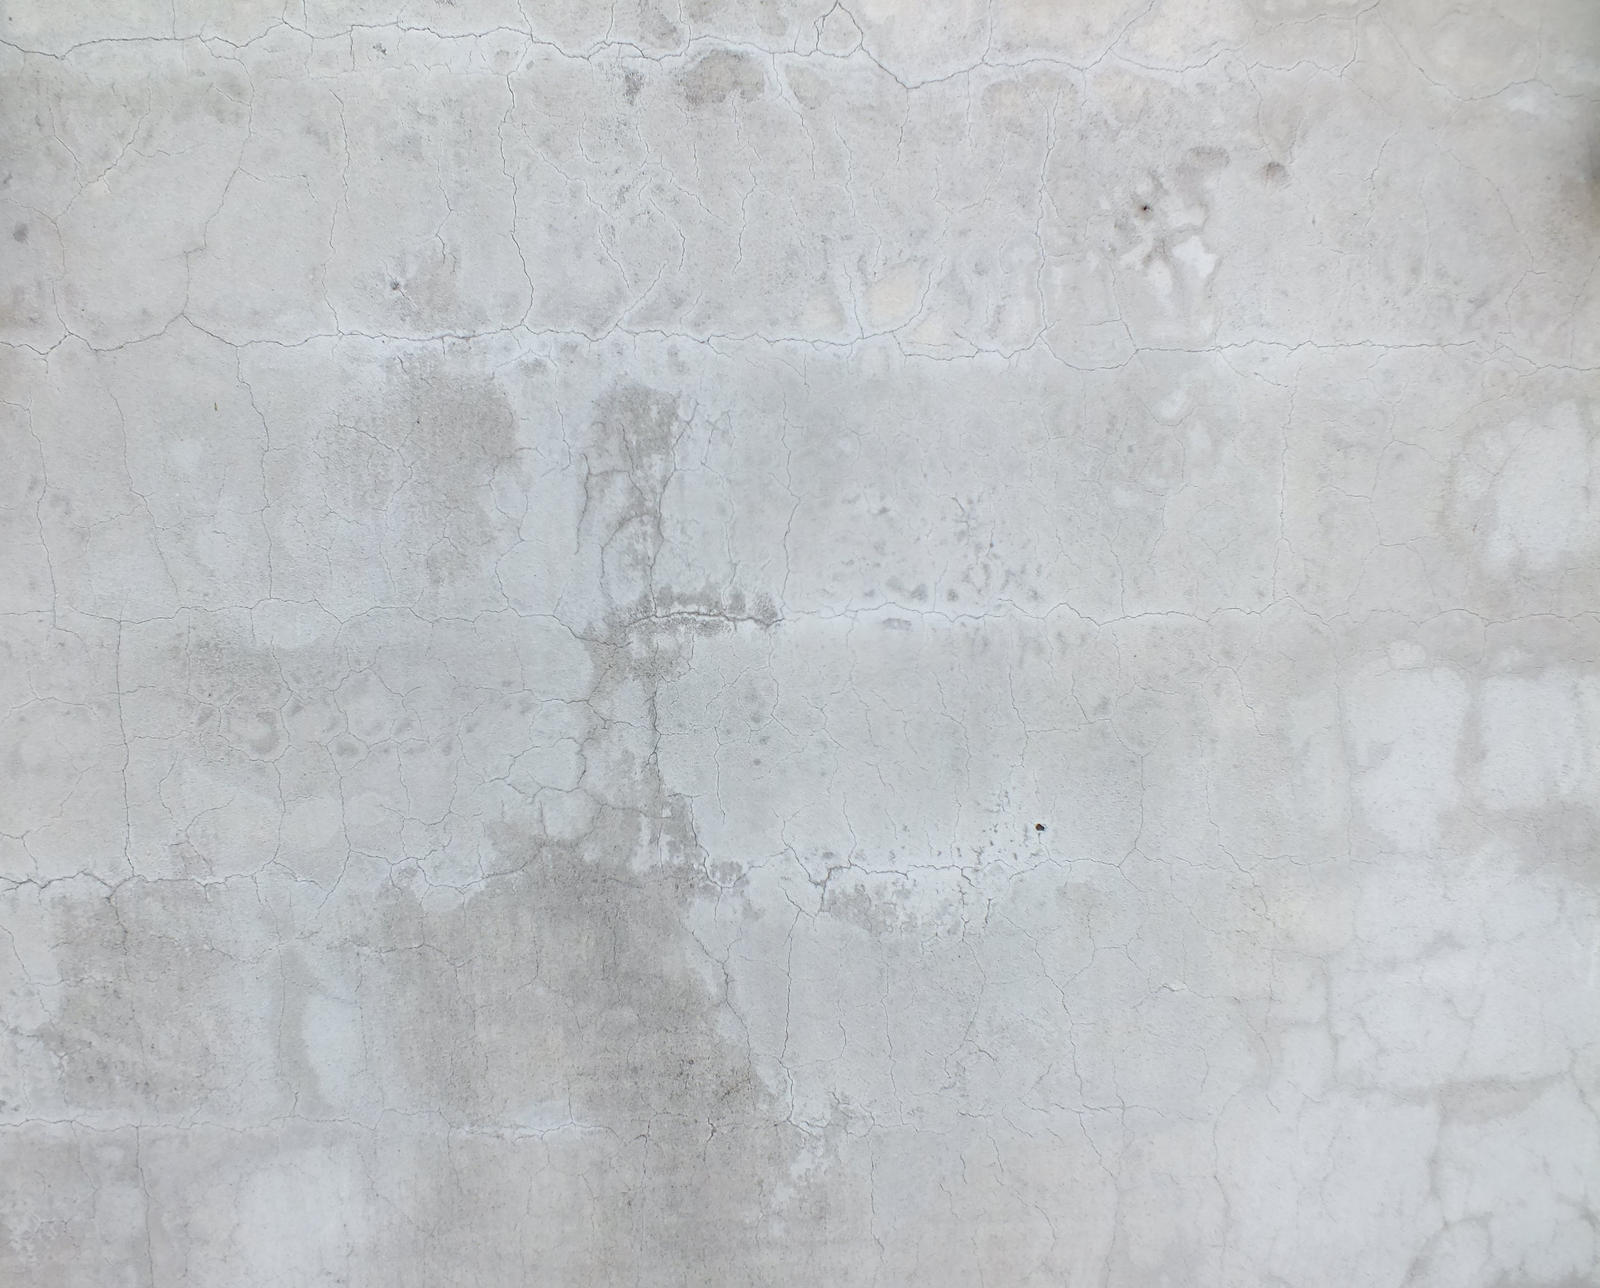 beton wall 01 in animatioNet , by ribot02